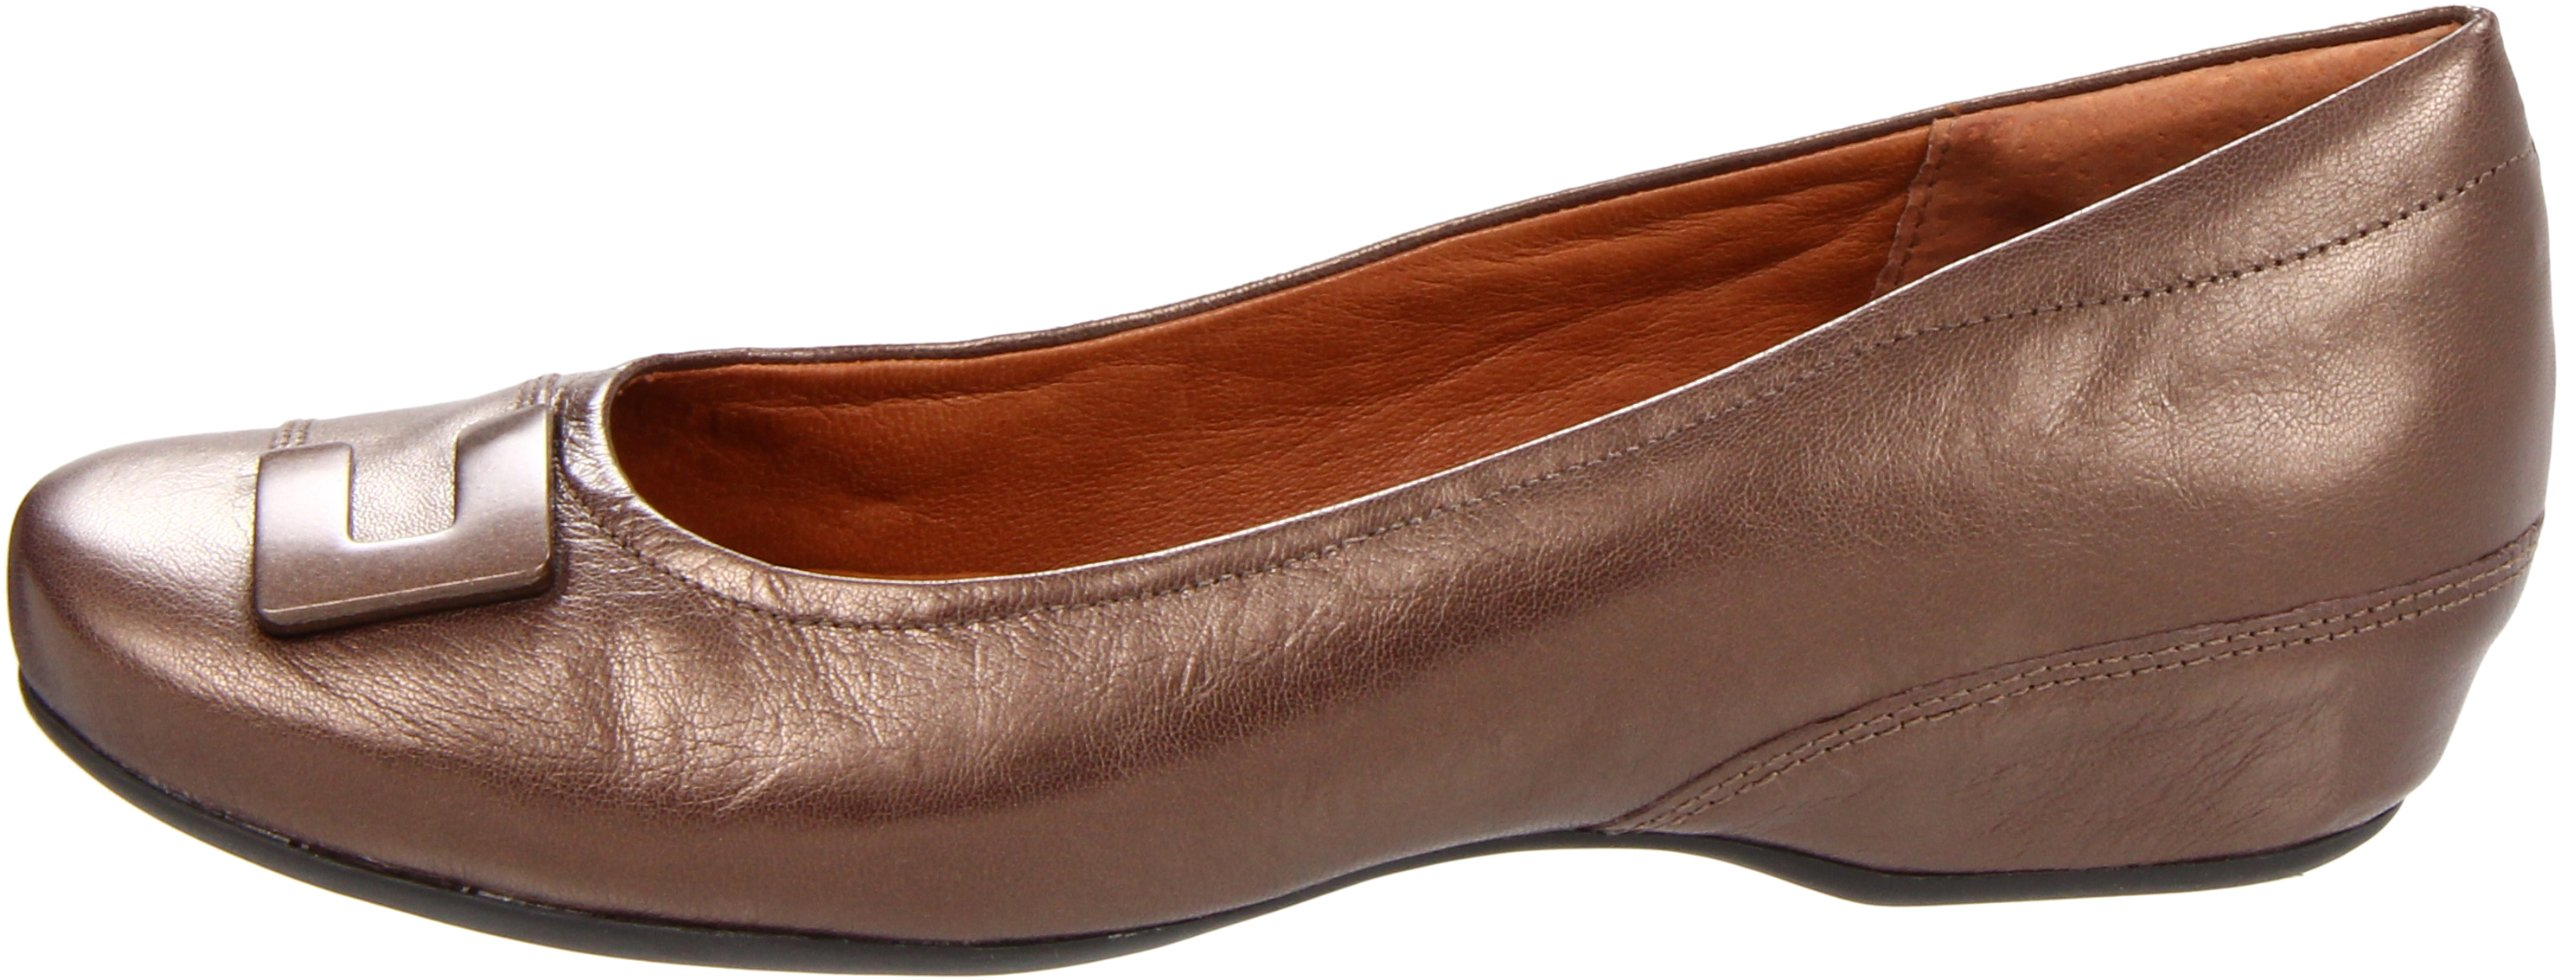 Clarks Women's Concert Choir Dress Shoes,Brown Metallic Leather,5 M US by CLARKS (Image #5)